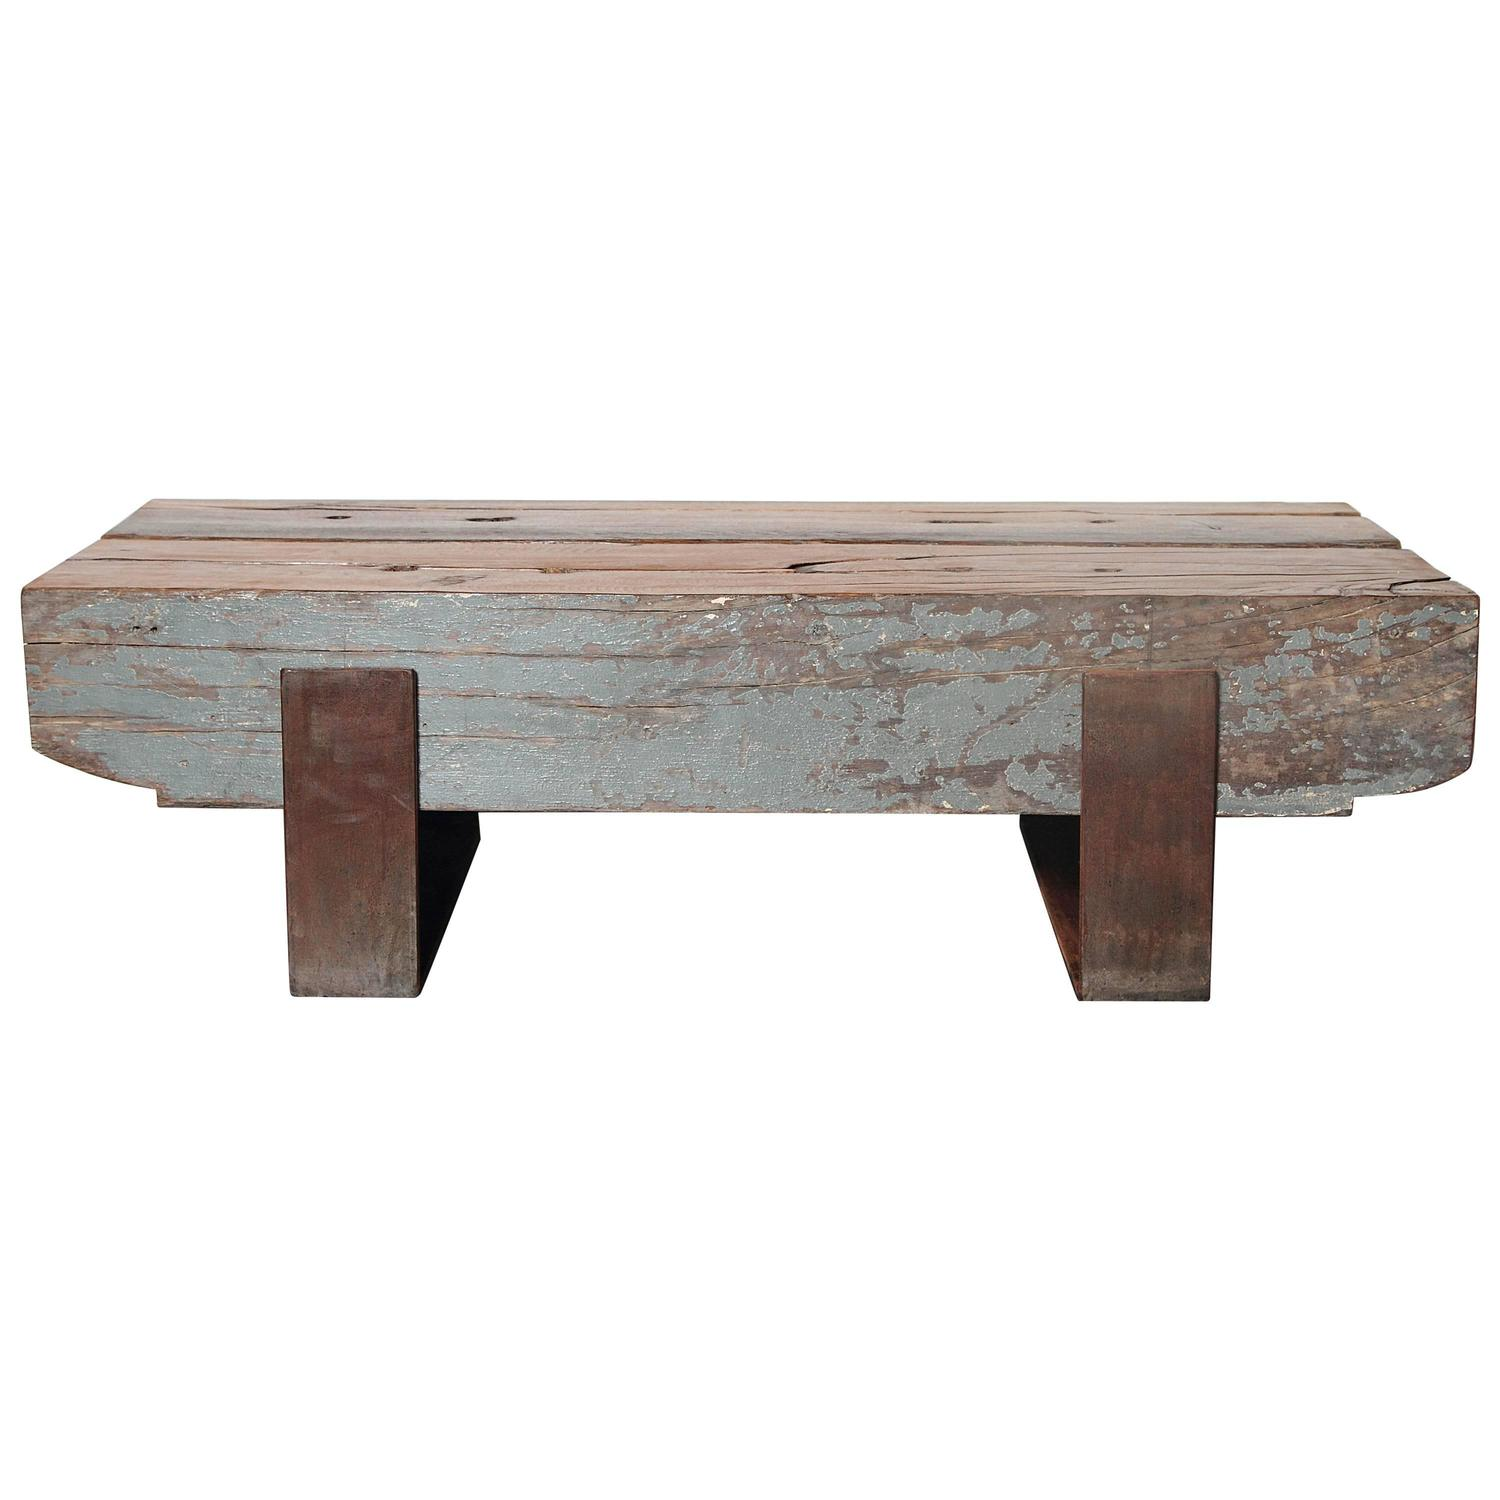 French Beam Teak Coffee Table: French Pine Coffee Table For Sale At 1stdibs